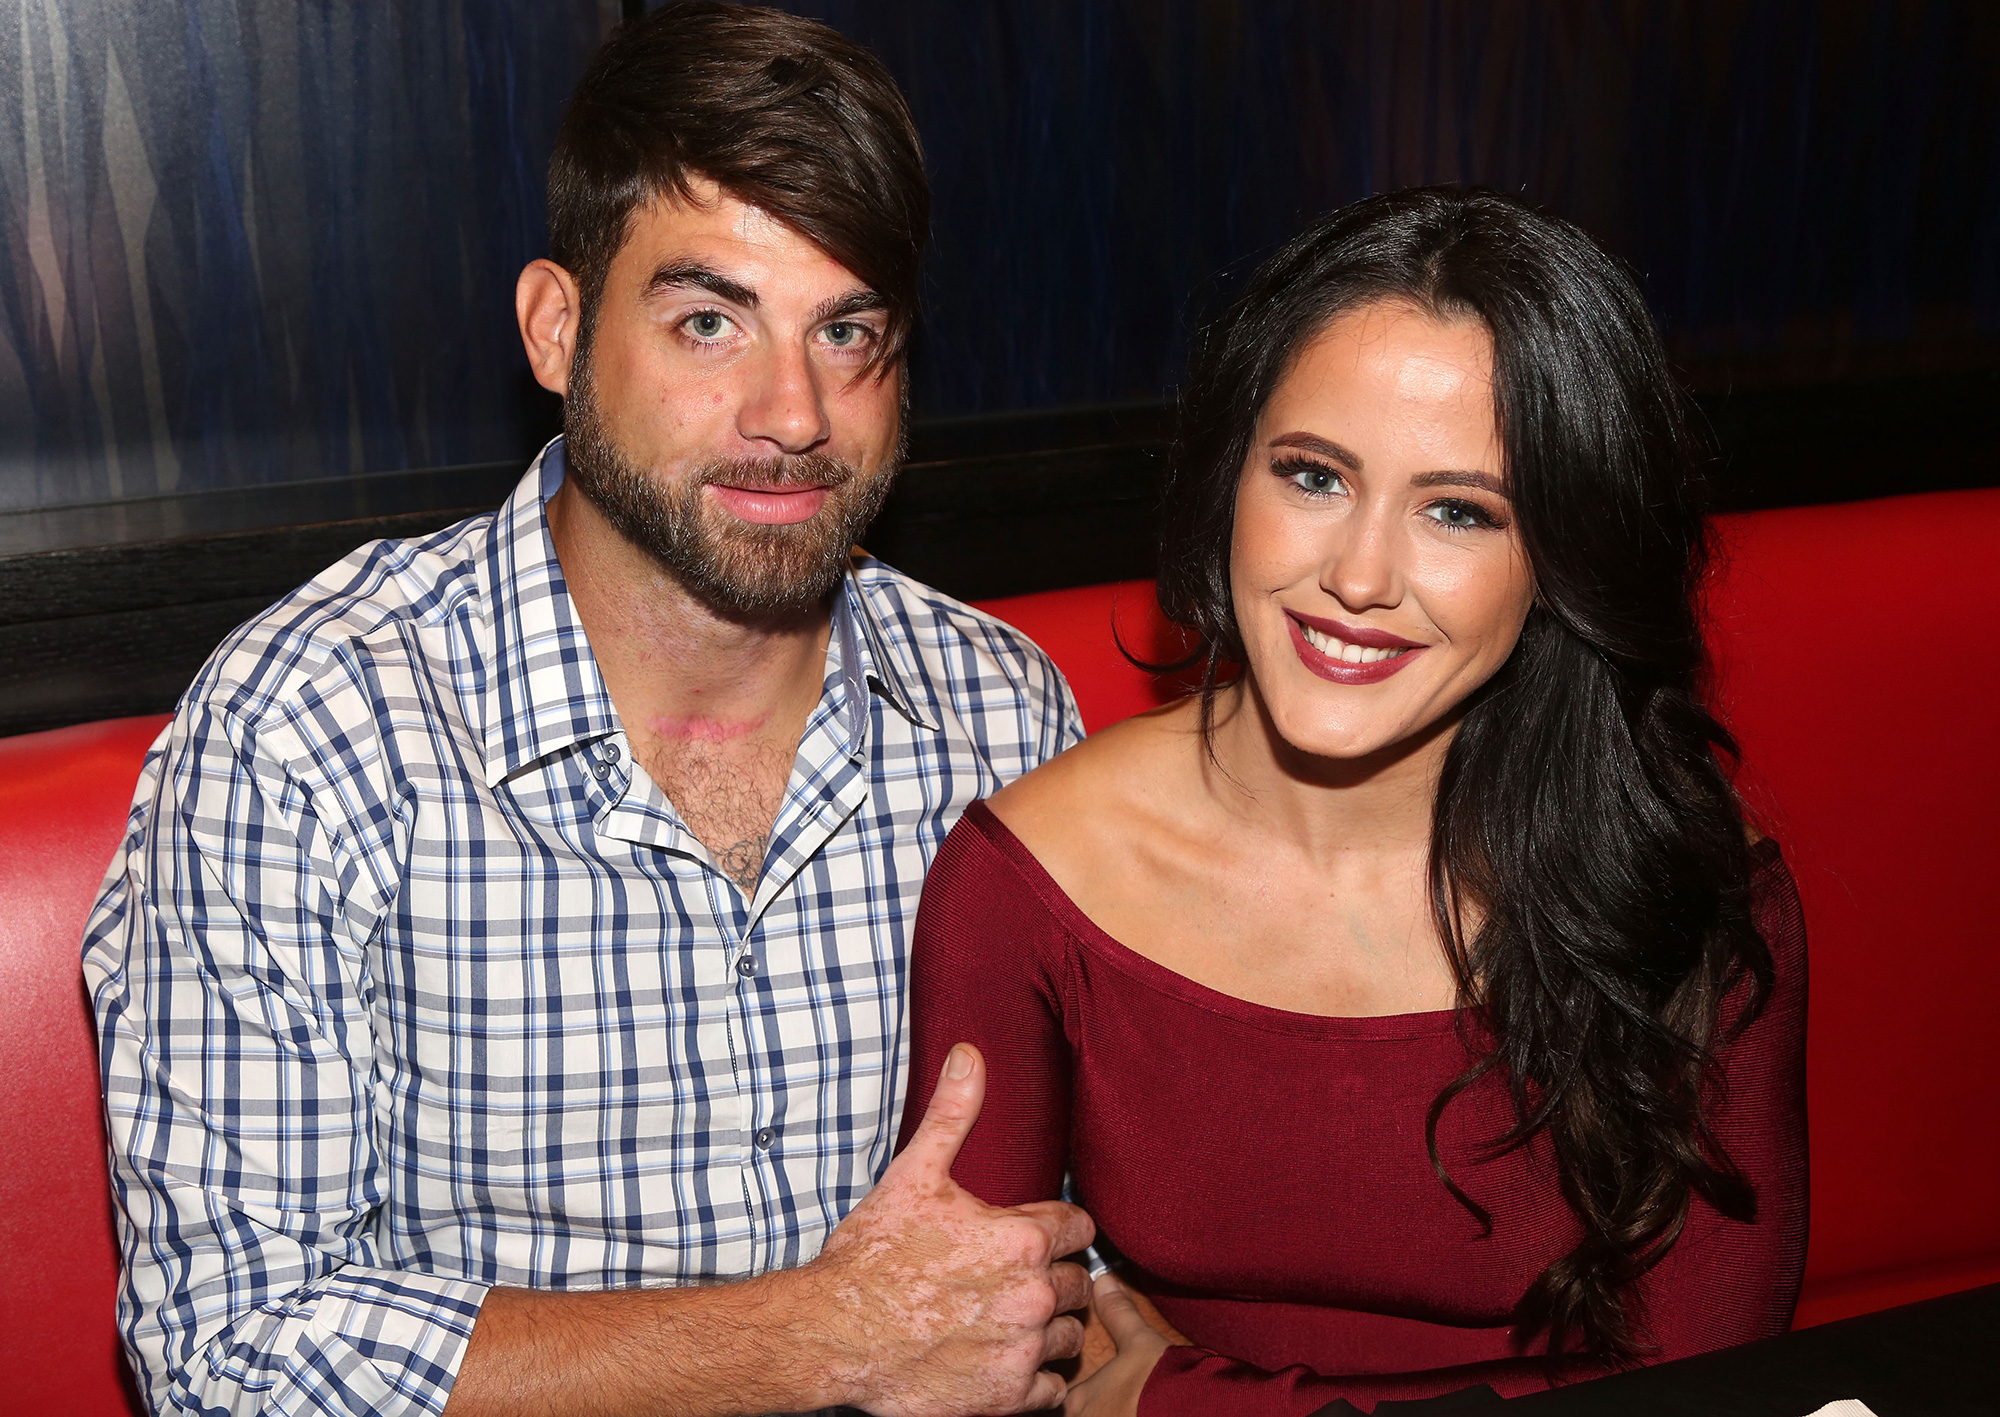 Who is jenelle dating now 2018